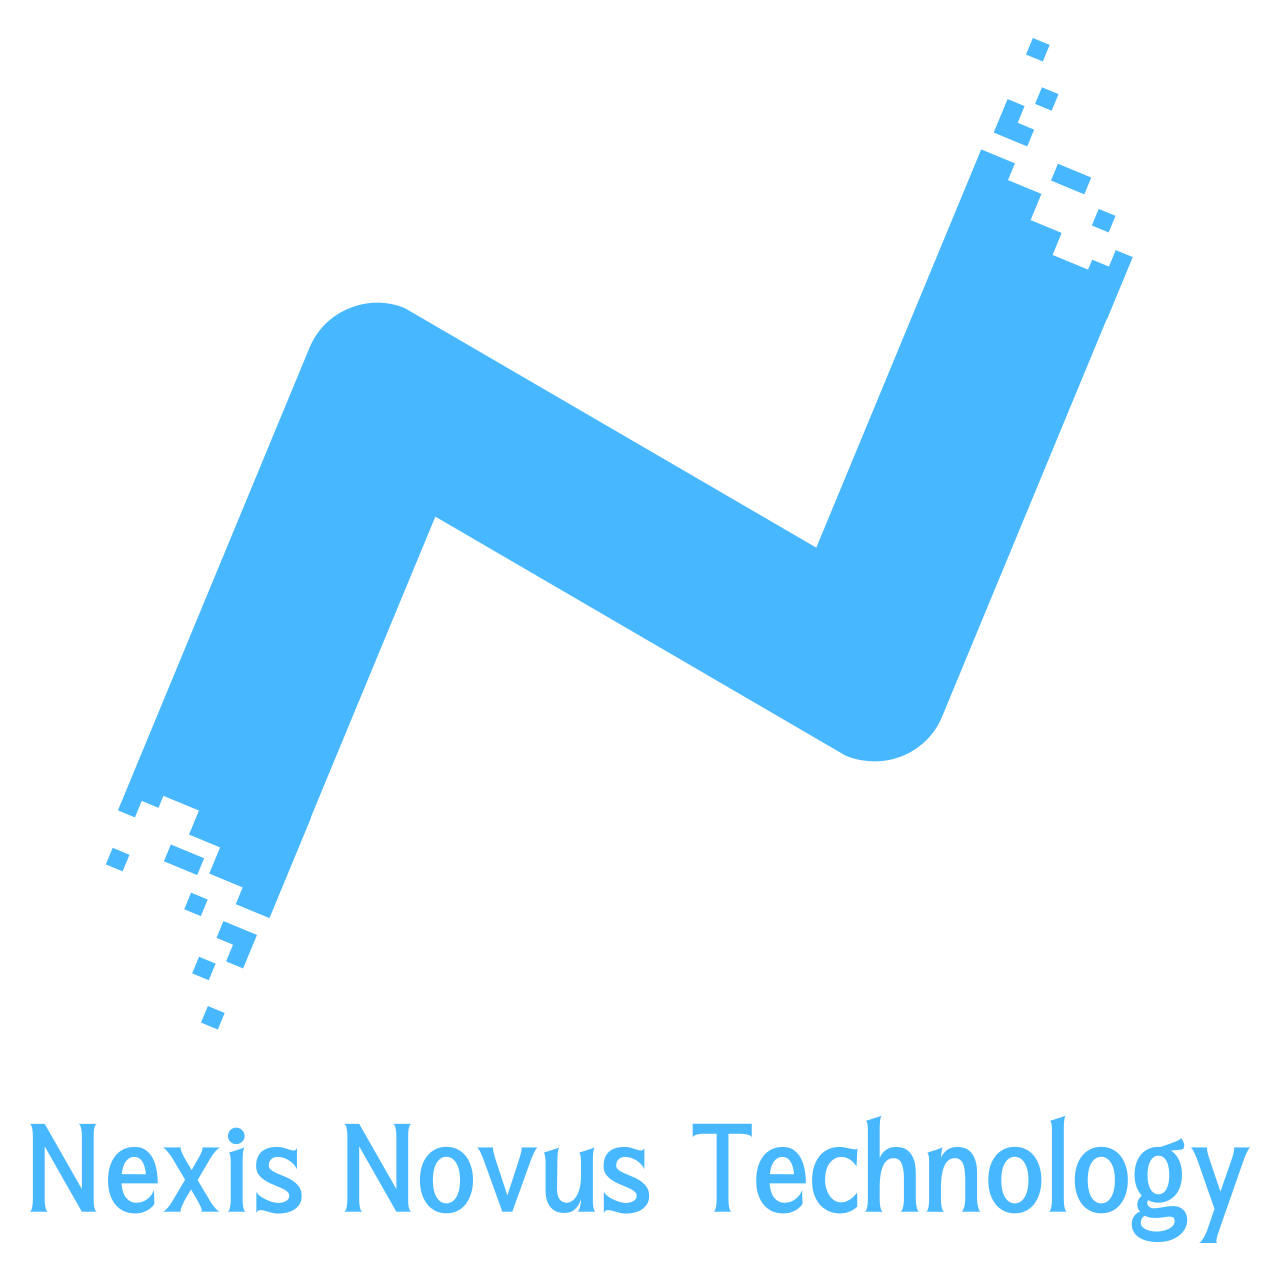 SEO Malaysia, Web Design, And Social Media Marketing By Nexis Novus Technology Delivers Results At Affordable Rates